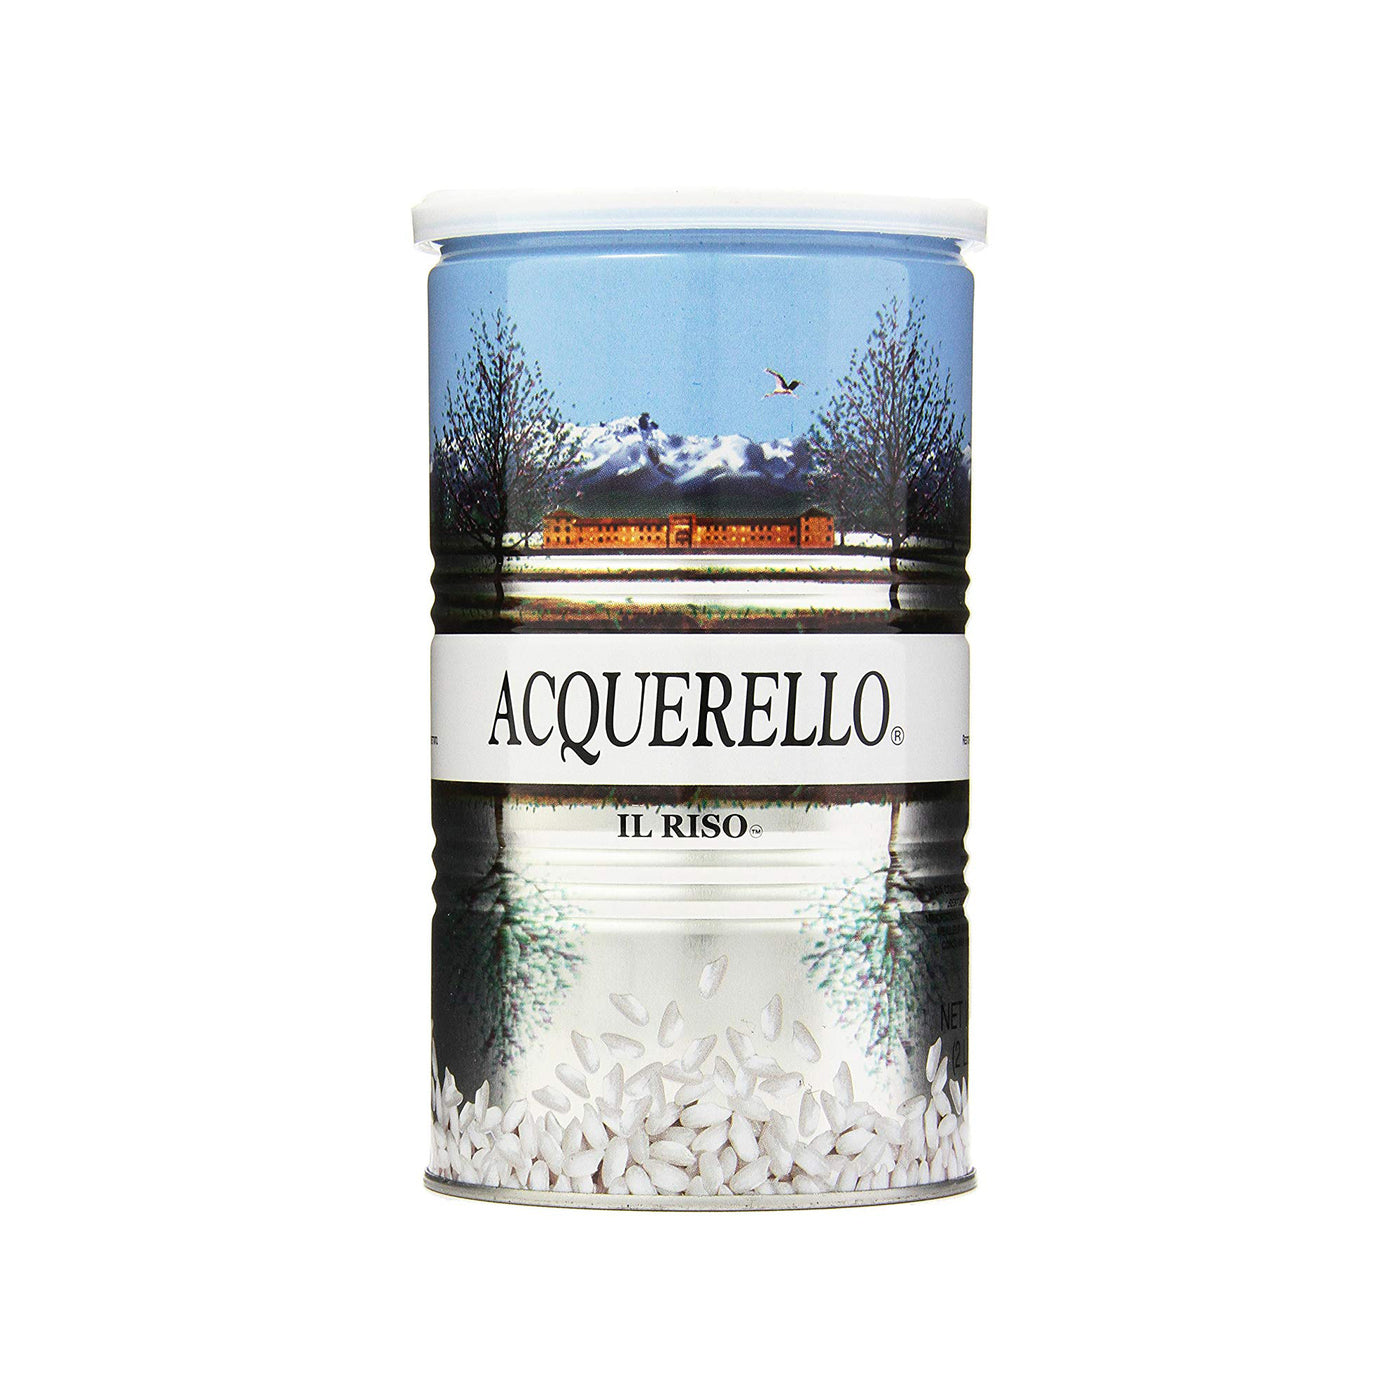 Acquerello Carnaroli Rice, 2lb-3 Ounce Tin